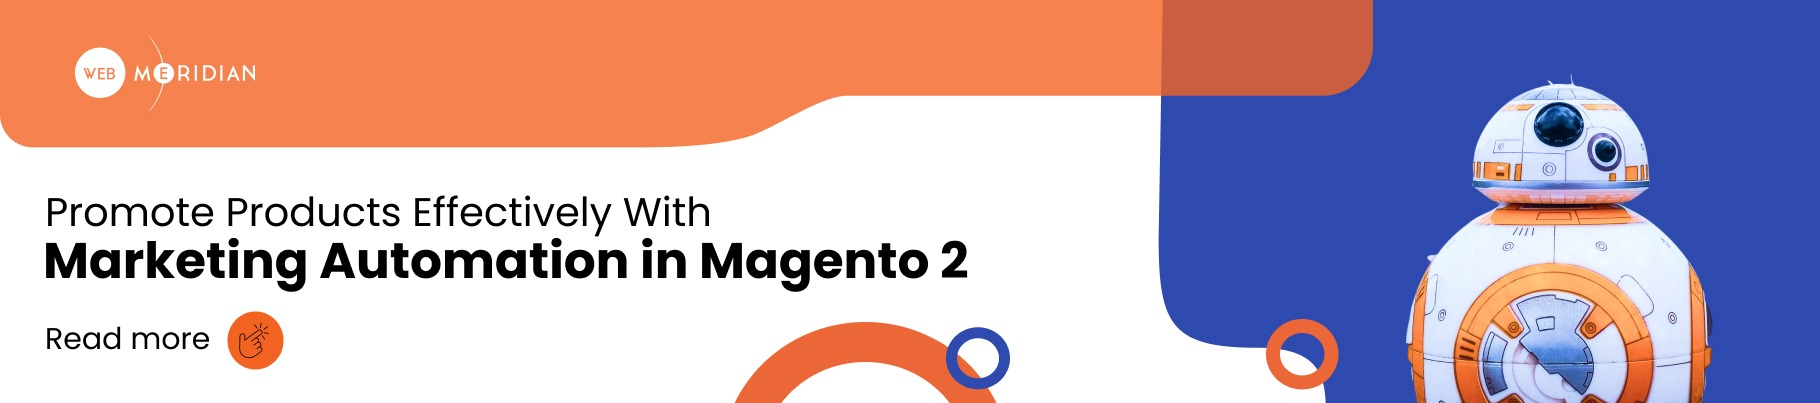 Magento eCommerce Architecture - Marketing Automation in Magento 2